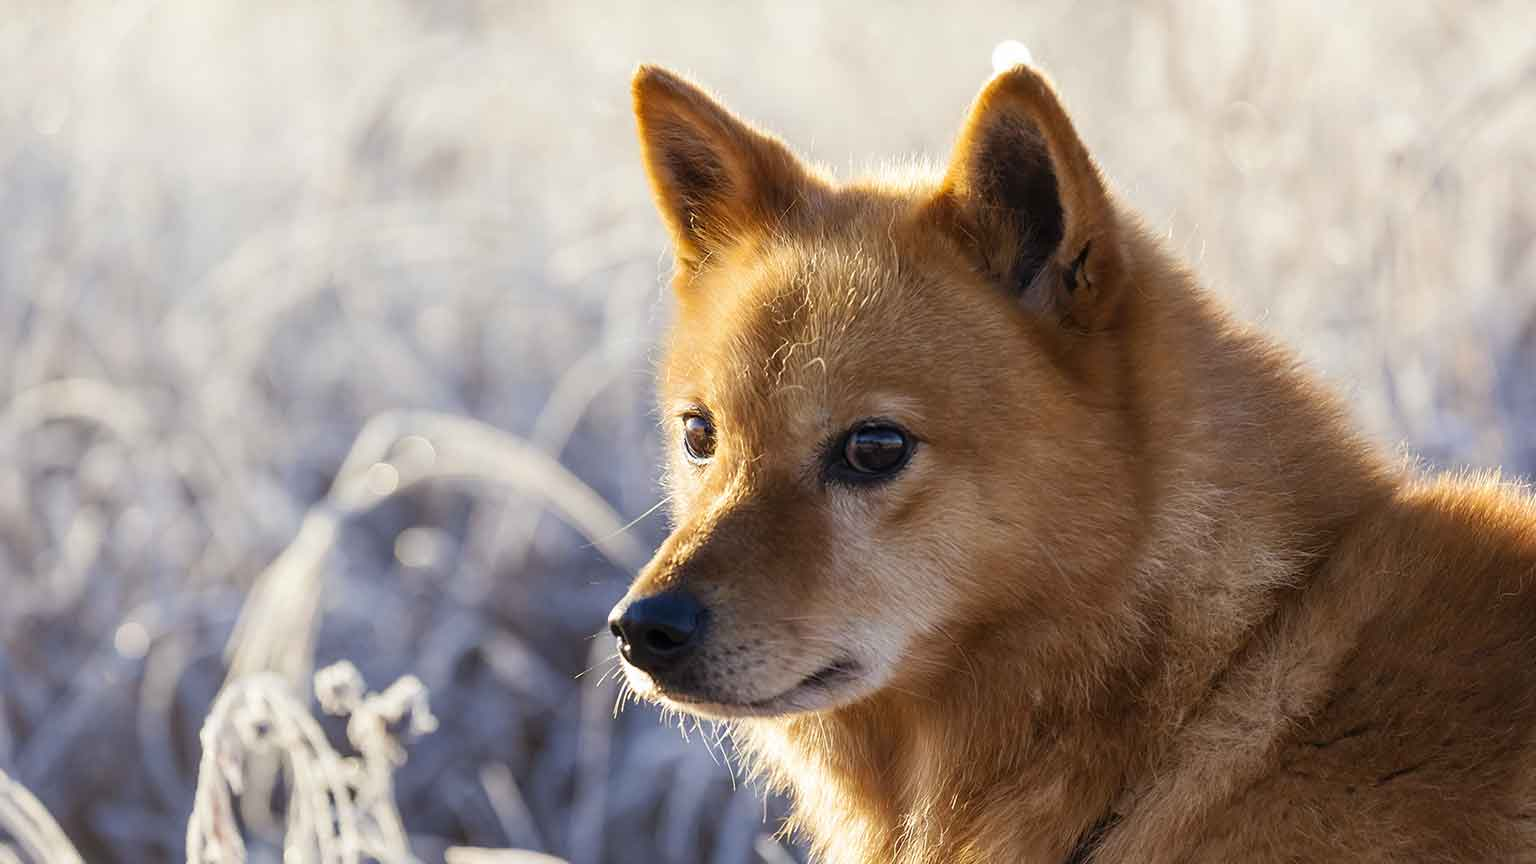 Finnish Spitz - Your Guide To An Ancient And Isolated Dog Breed